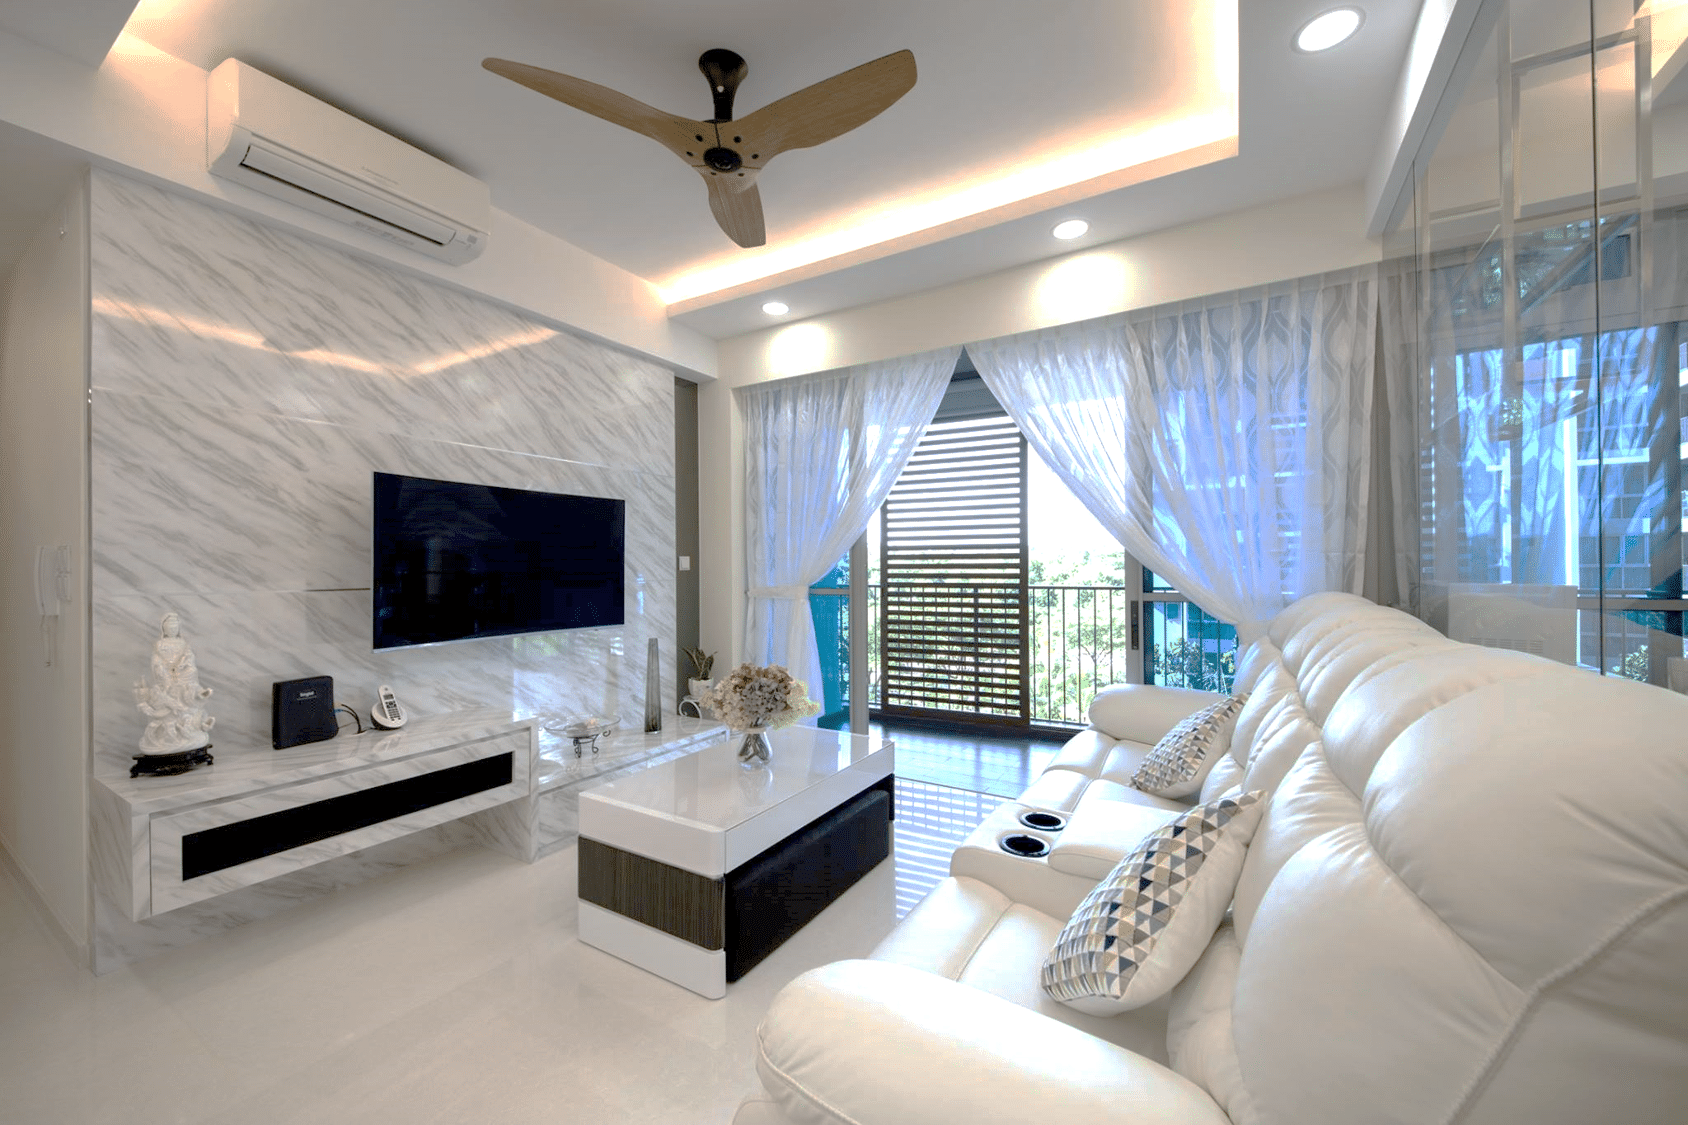 White clean and elegant modern interior design Clean modern interior design